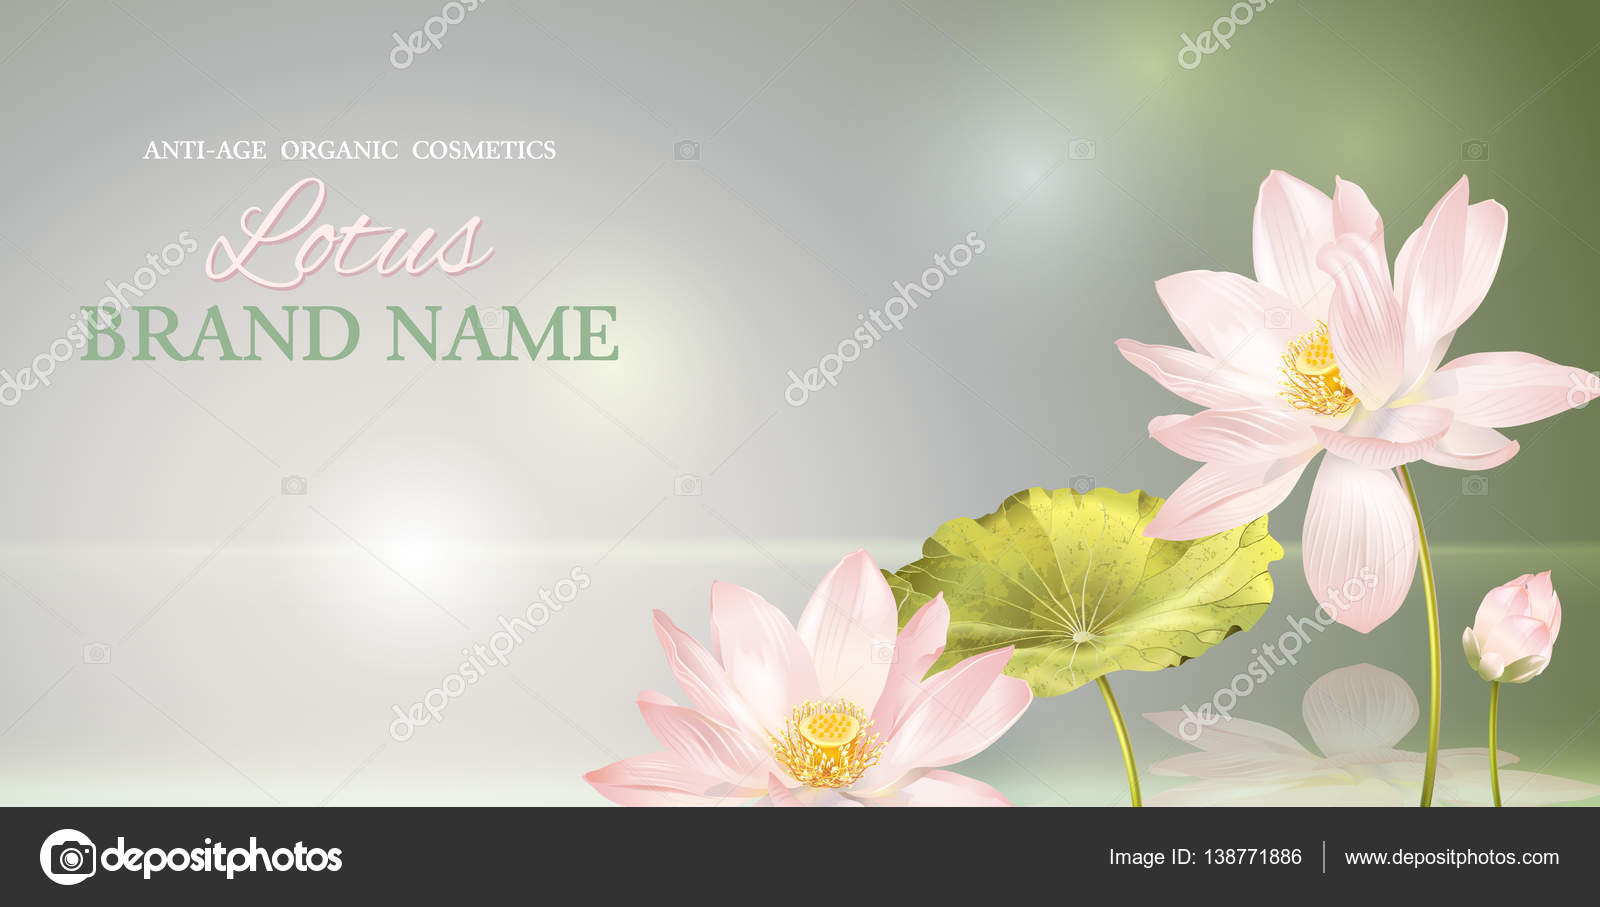 Lotus flower banner stock vector purplebird18 138771886 lotus flower banner stock vector mightylinksfo